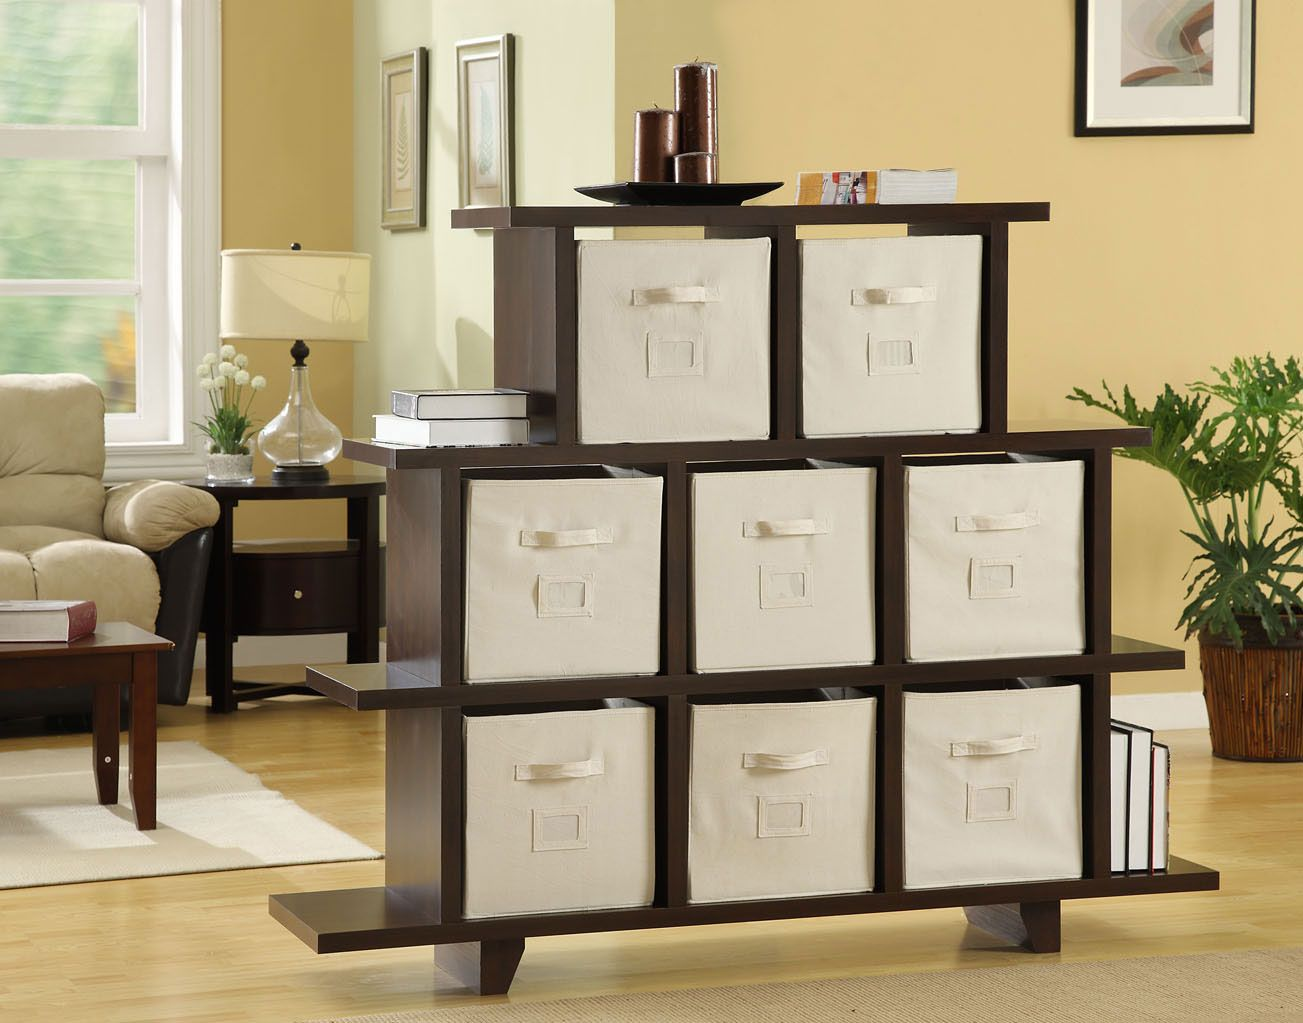 furniture divider design. smart room divider ideas nice idea design decorative unique cabinet furniture c